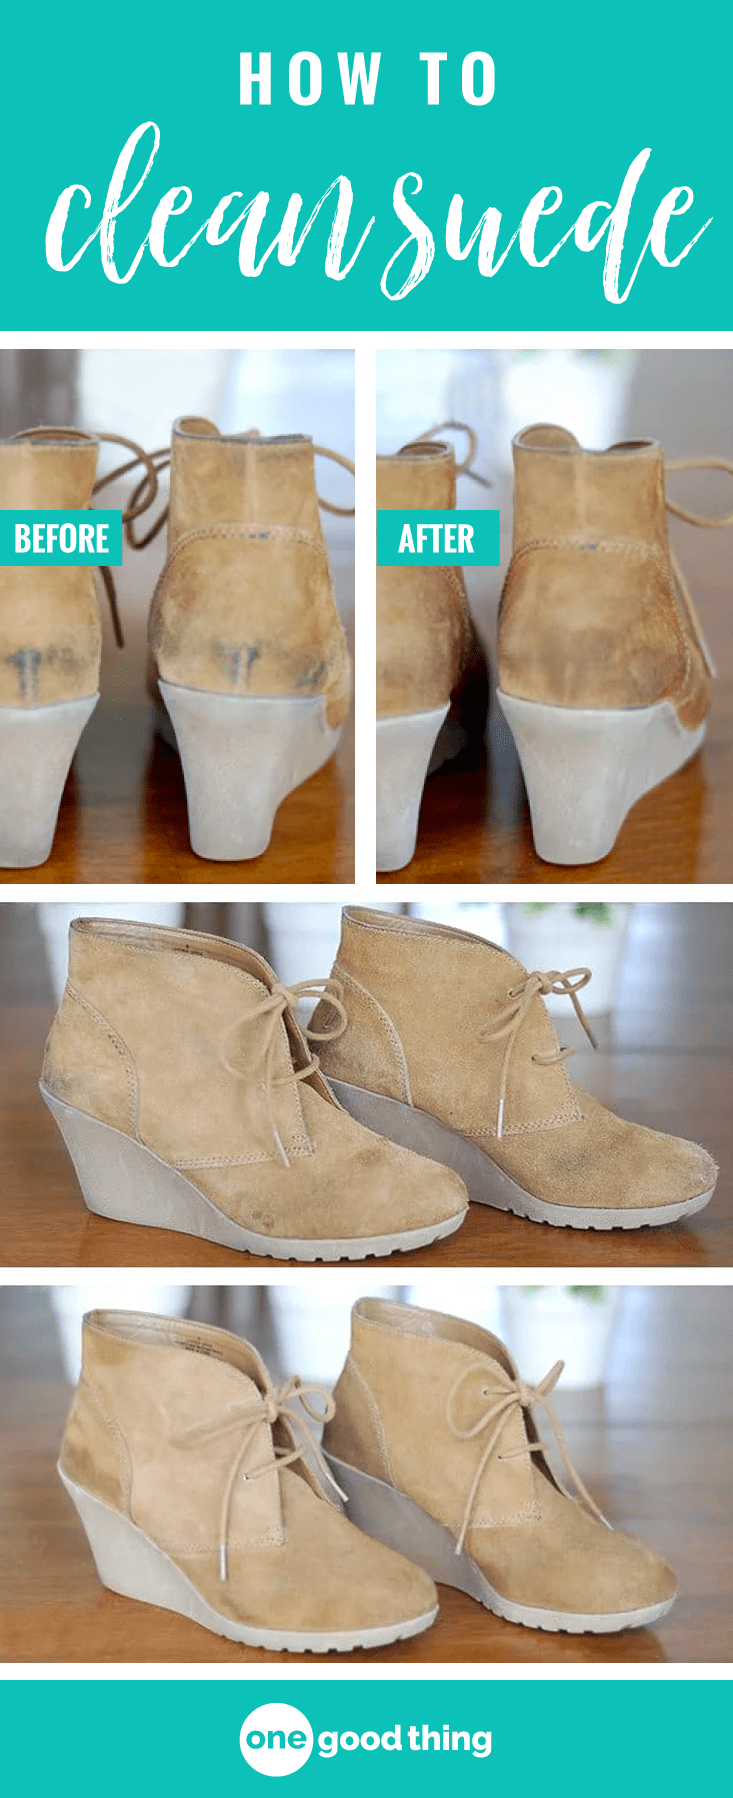 Cleaning Suede Doesn T Have To Be Difficult Find Out How Remove Scuffs Stainake Your Shoes Jackets Accessories Look Like New Again